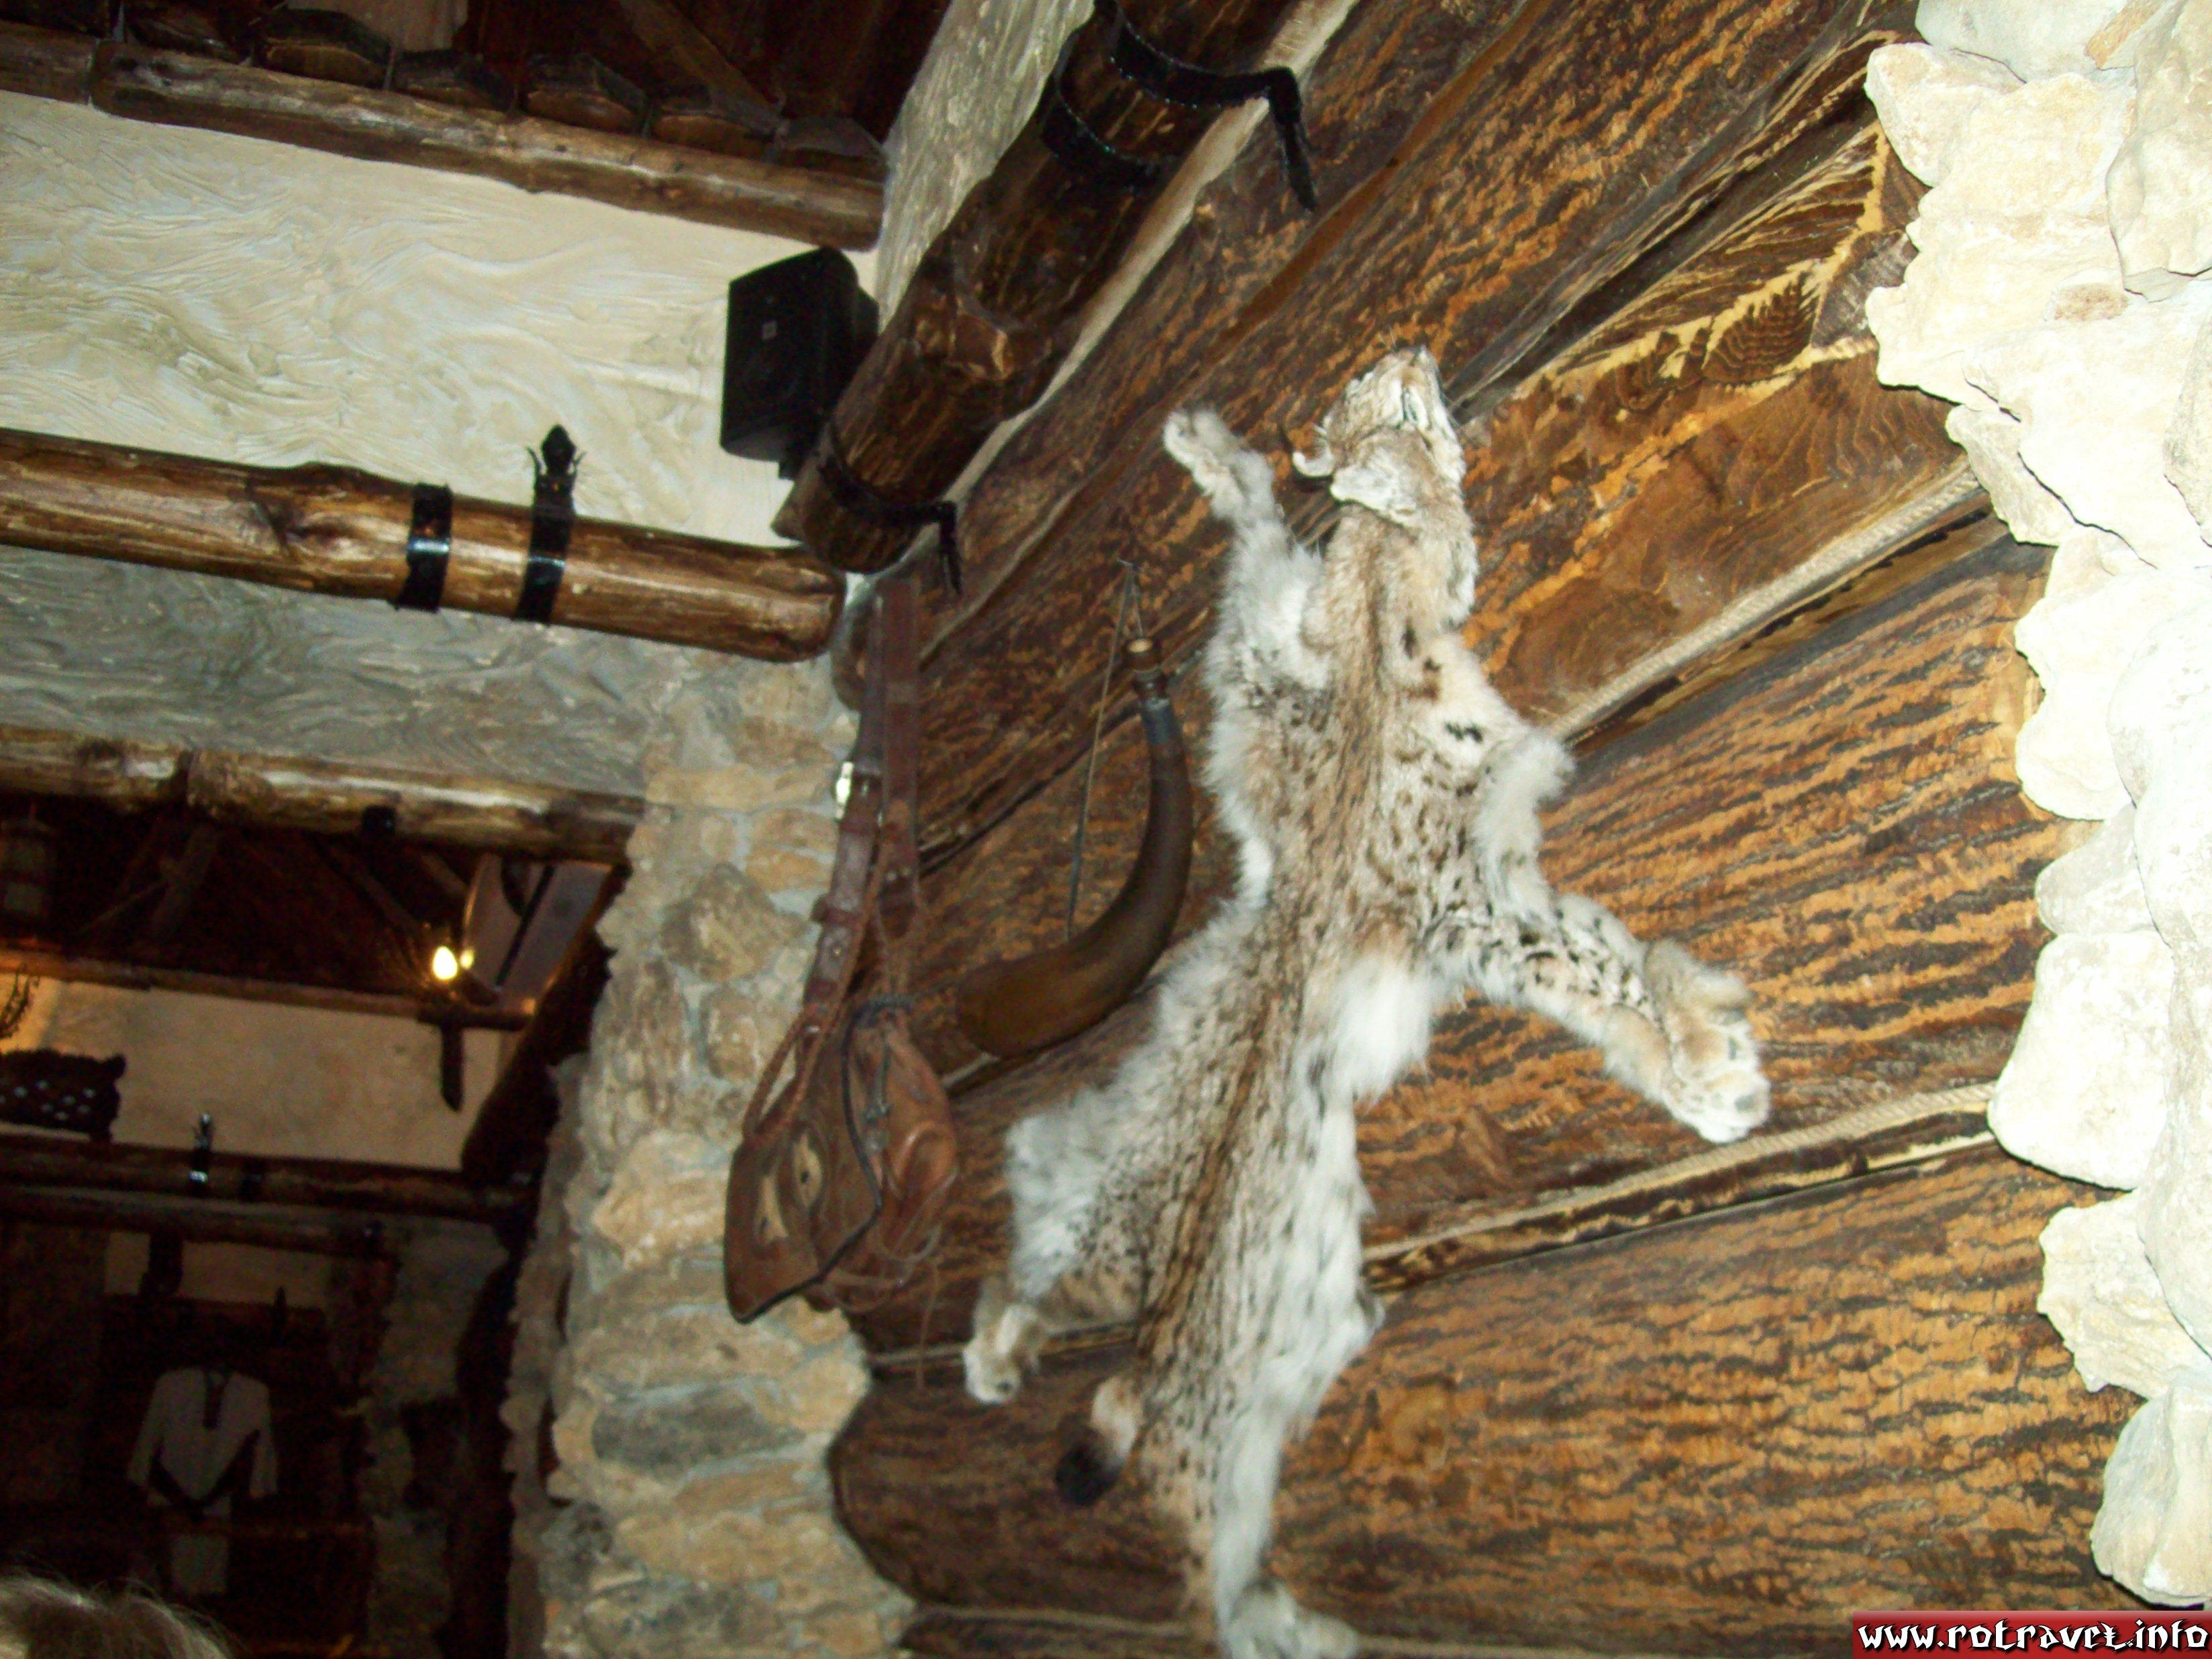 The walls are decorated with natural animal skin